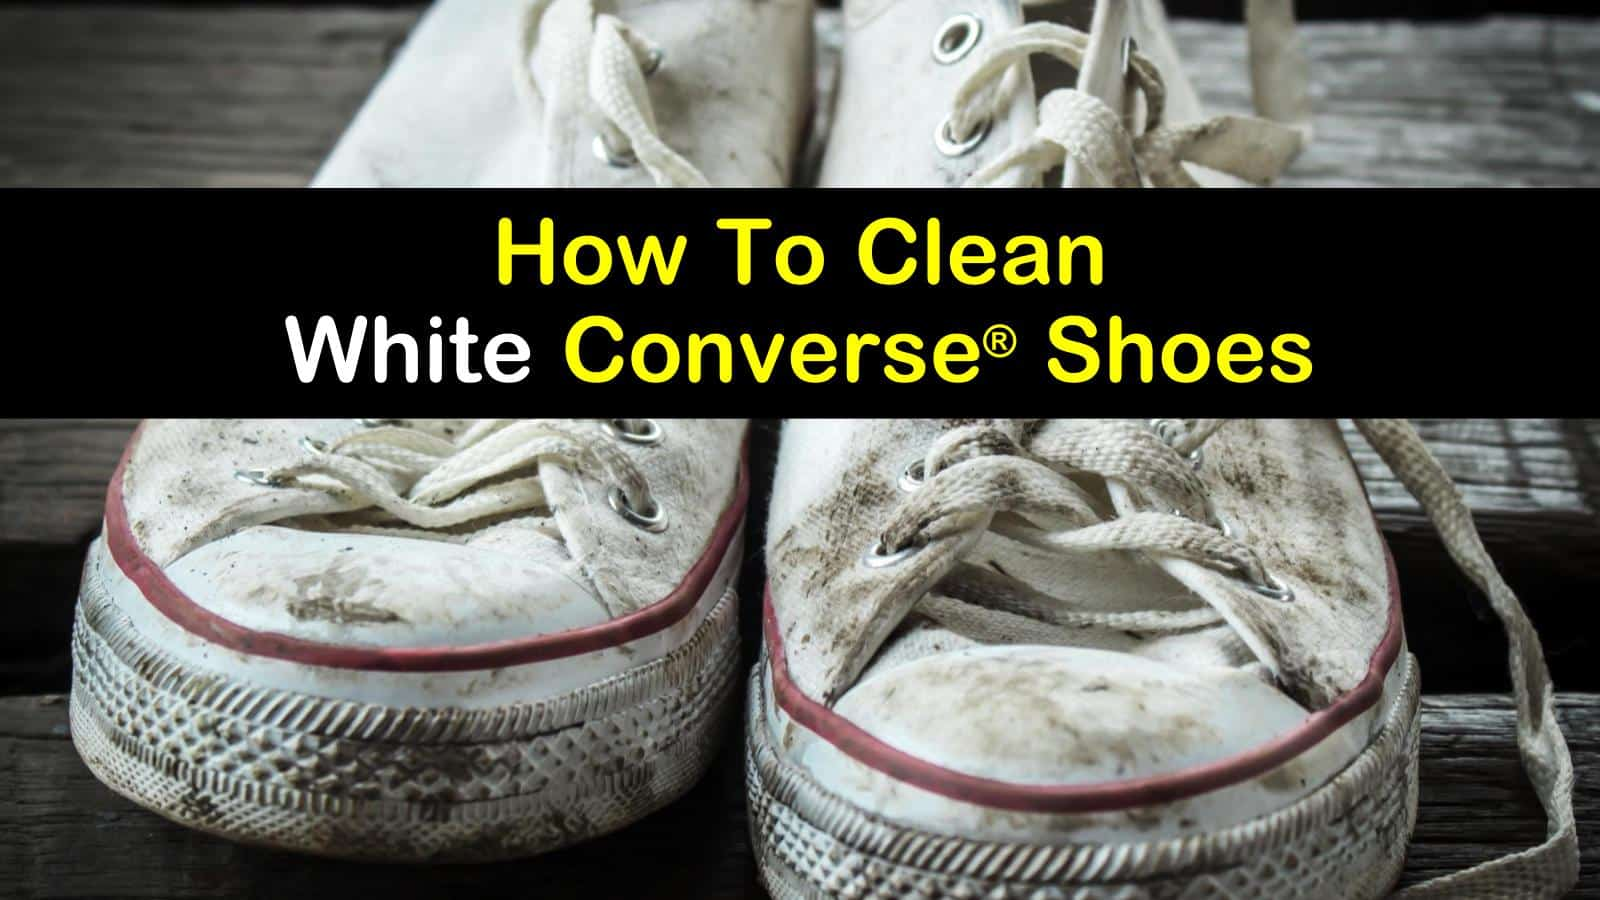 How To Clean White Converse Shoes - The Ultimate Guide titleimg1